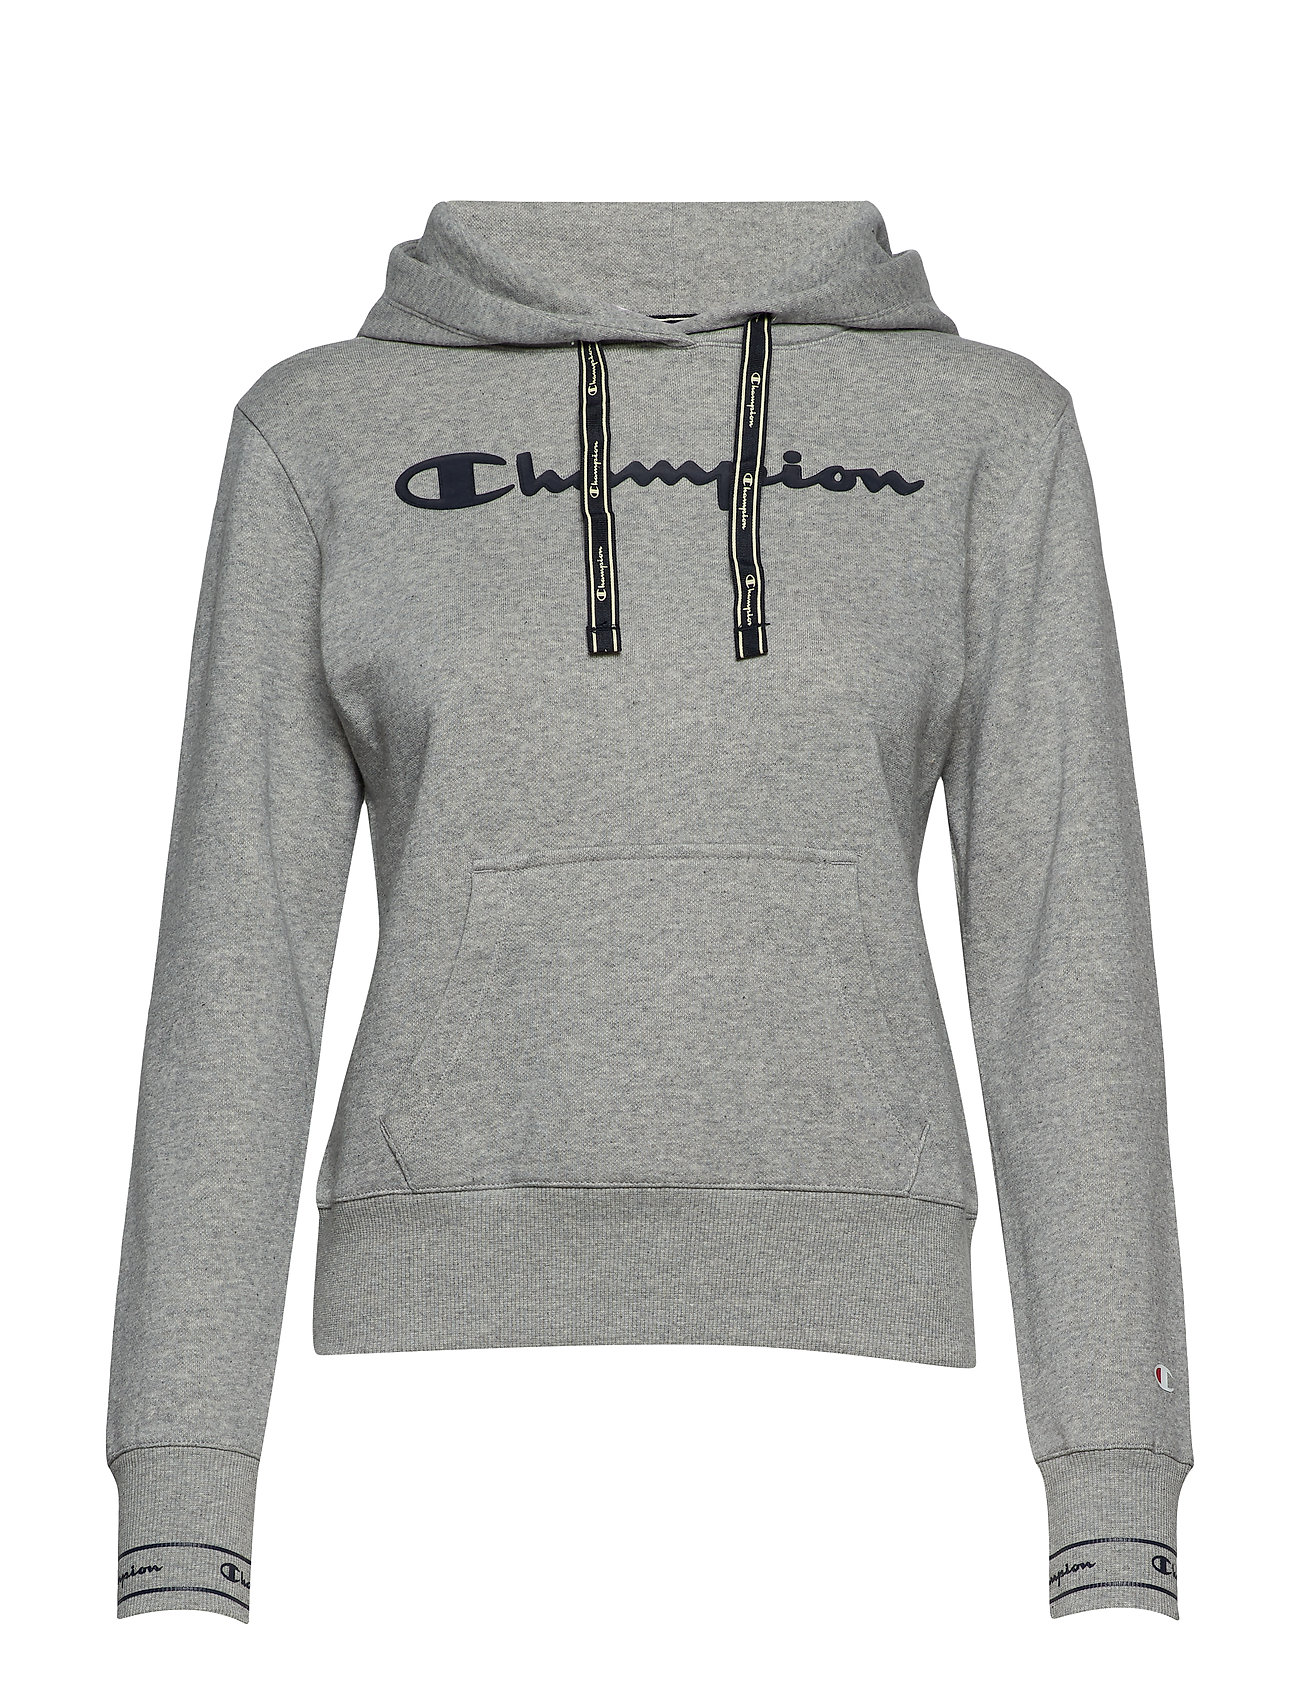 Champion Hooded Sweatshirt - GRAY MELANGE LIGHT